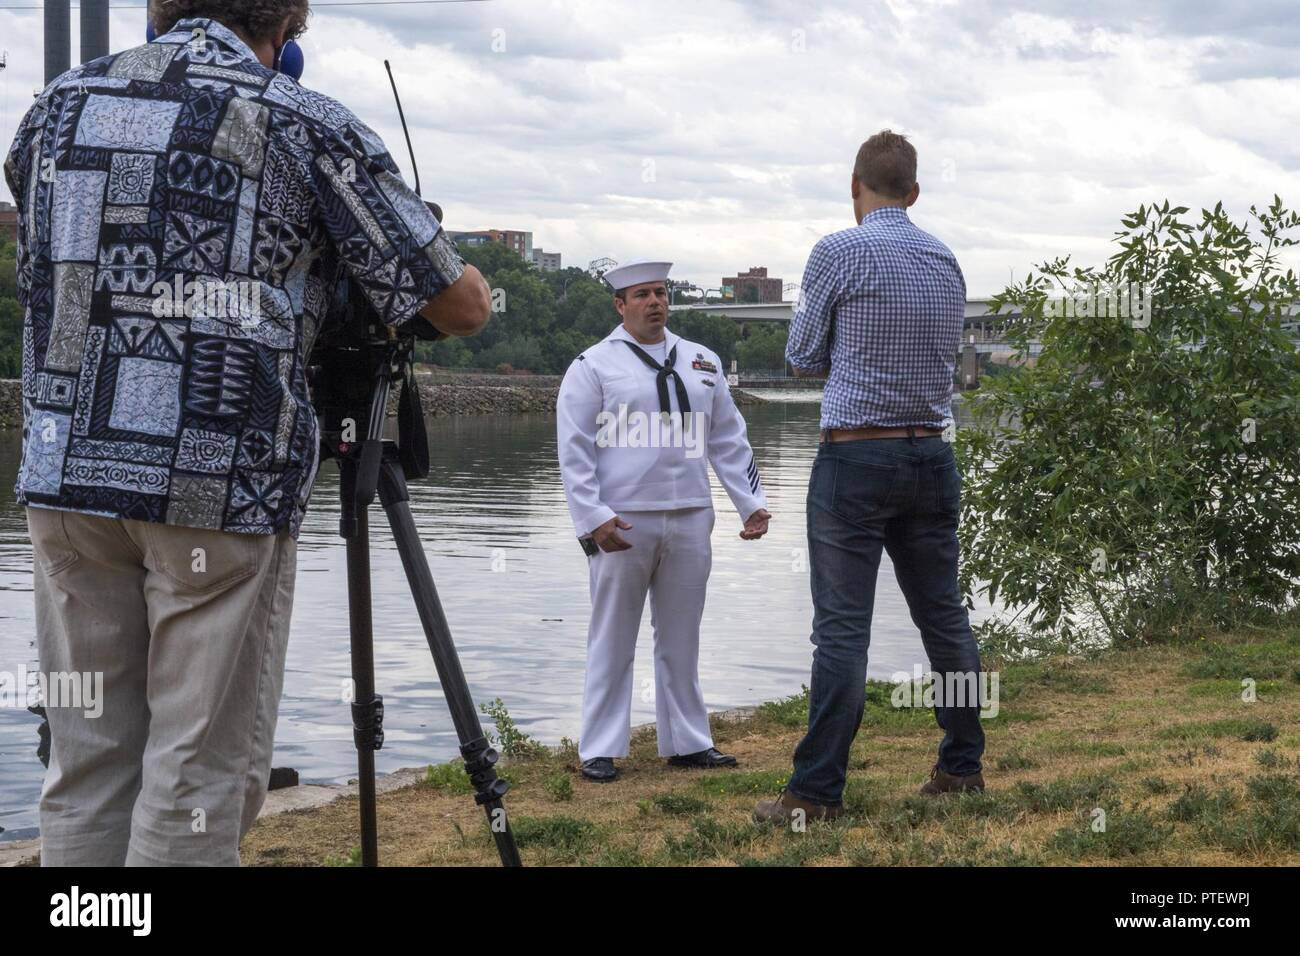 MINNEAPOLIS (July 18, 2017) –Navy Diver 1st Class Brian Bennett is interviewed on the bank of the Mississippi River by NBC KARE 11 reporter Kent Erdahl, near the site of the collapse of the I-35W bridge ten years ago, where Bennett was called to assist local, state and federal authorities in finding missing victims, while he was attached to Mobile Diving and Salvage Unit (MDSU) 2. Bennett returned to the area to take part in a wreath laying ceremony during Minneapolis/St. Paul Navy Week, which recognized those who responded to the tragedy and remembered those lost. Navy Week programs serve as  - Stock Image